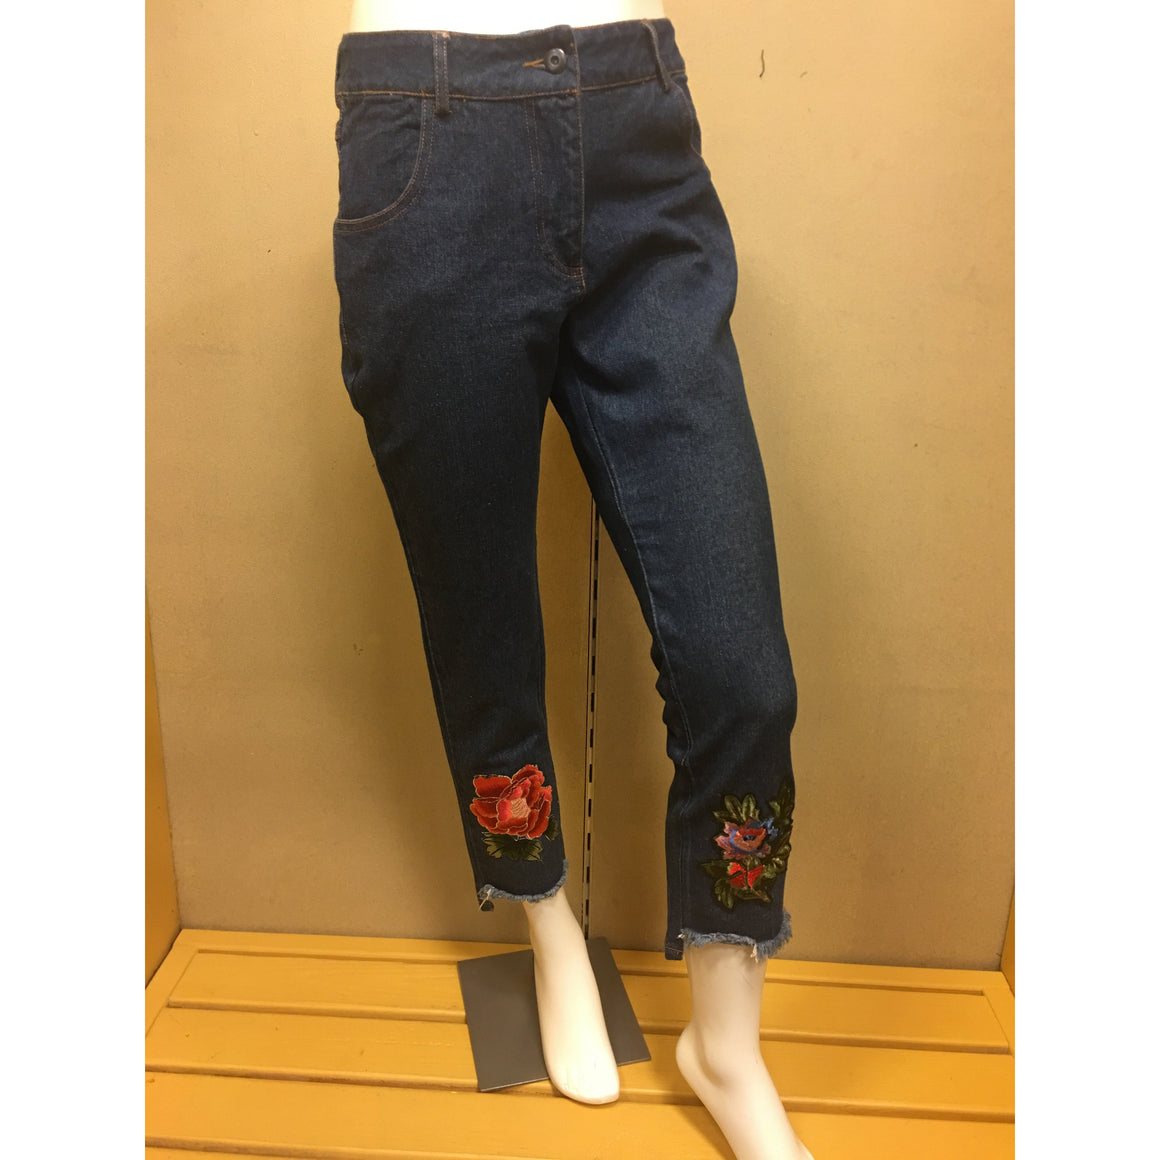 Denim Jeans w/printed Leg Design